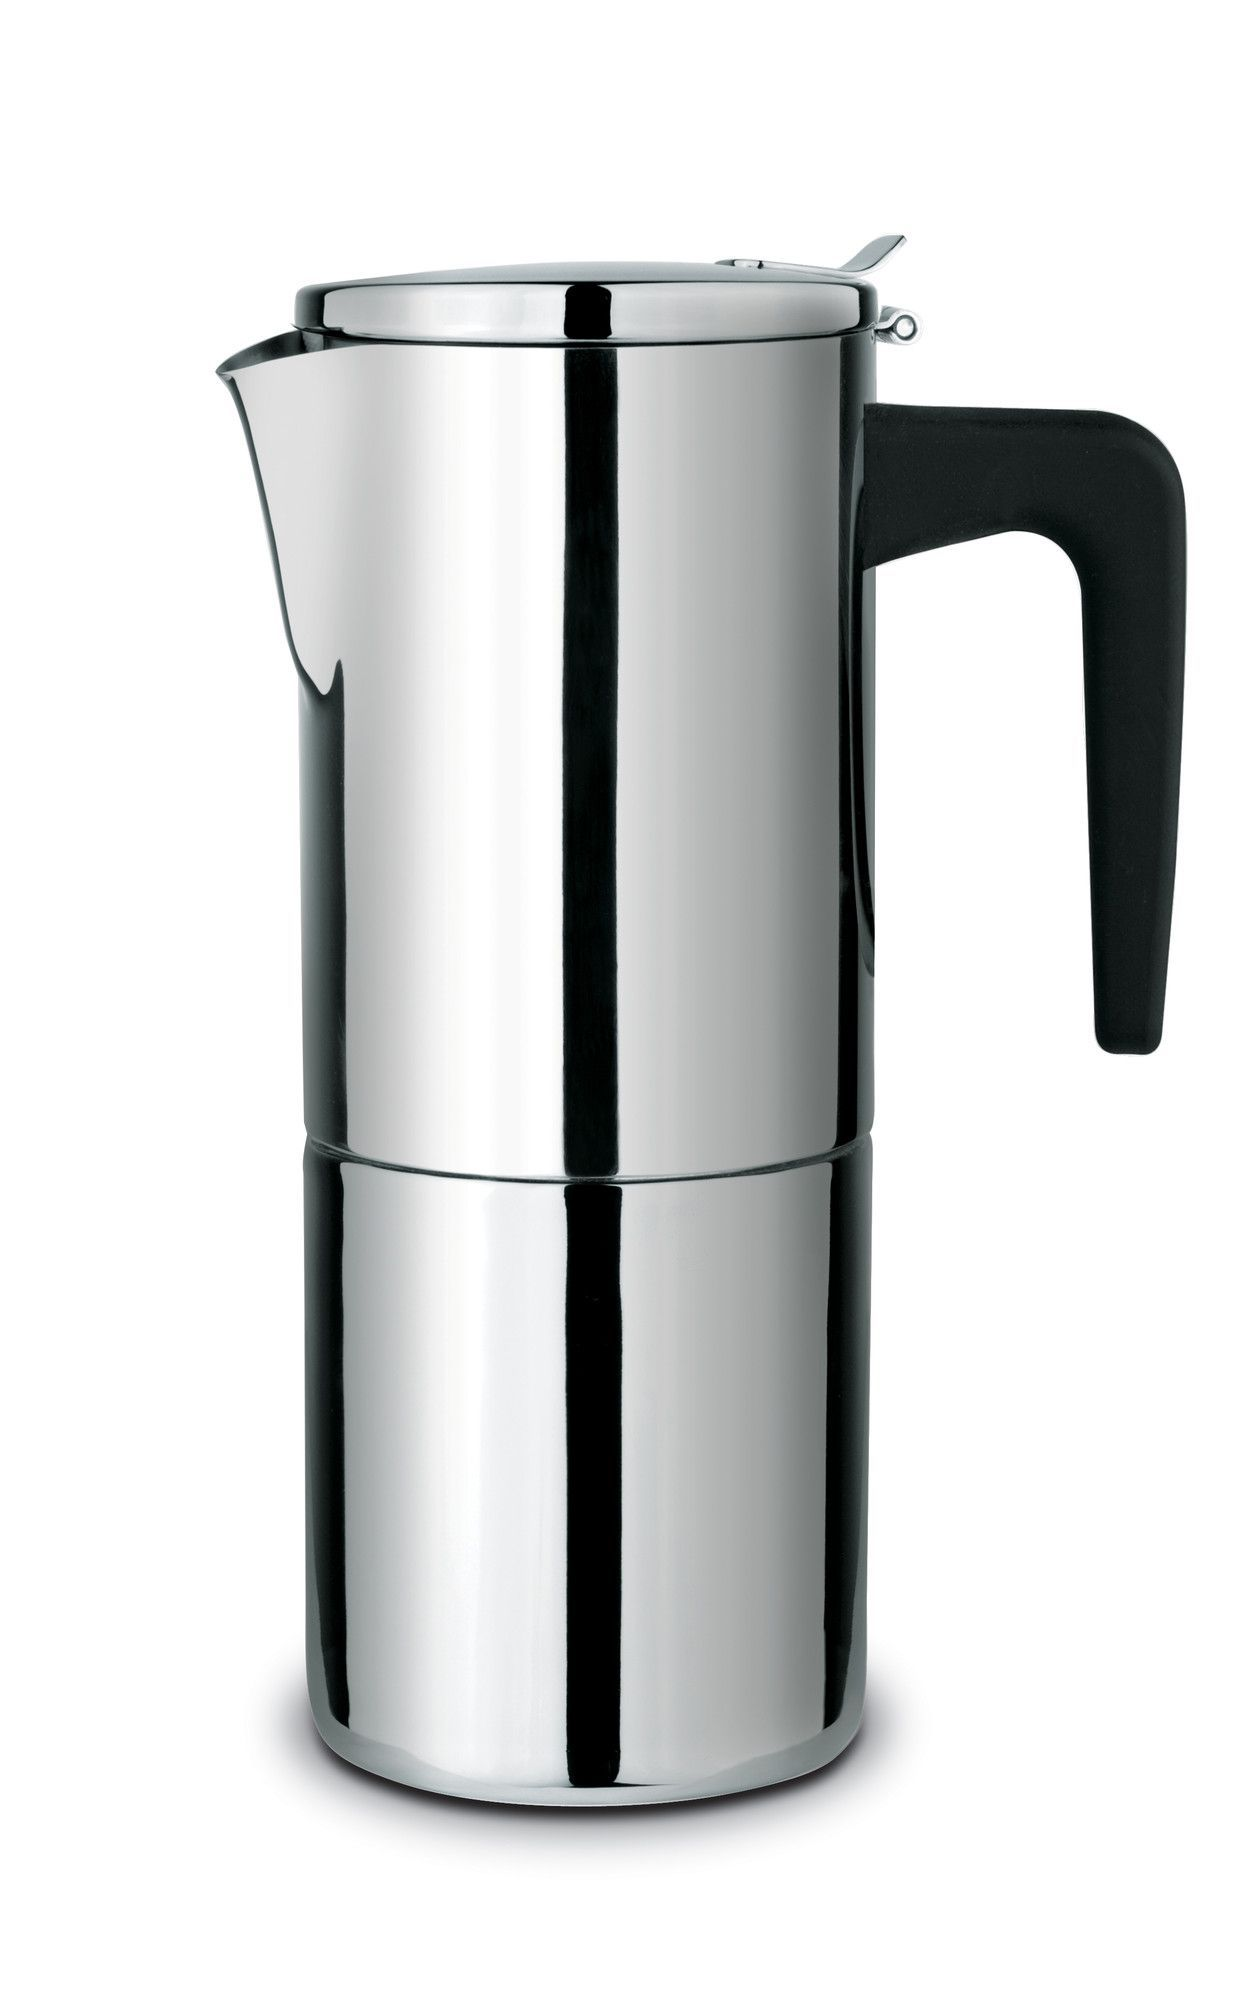 Features espresso maker material stainless steel mirror